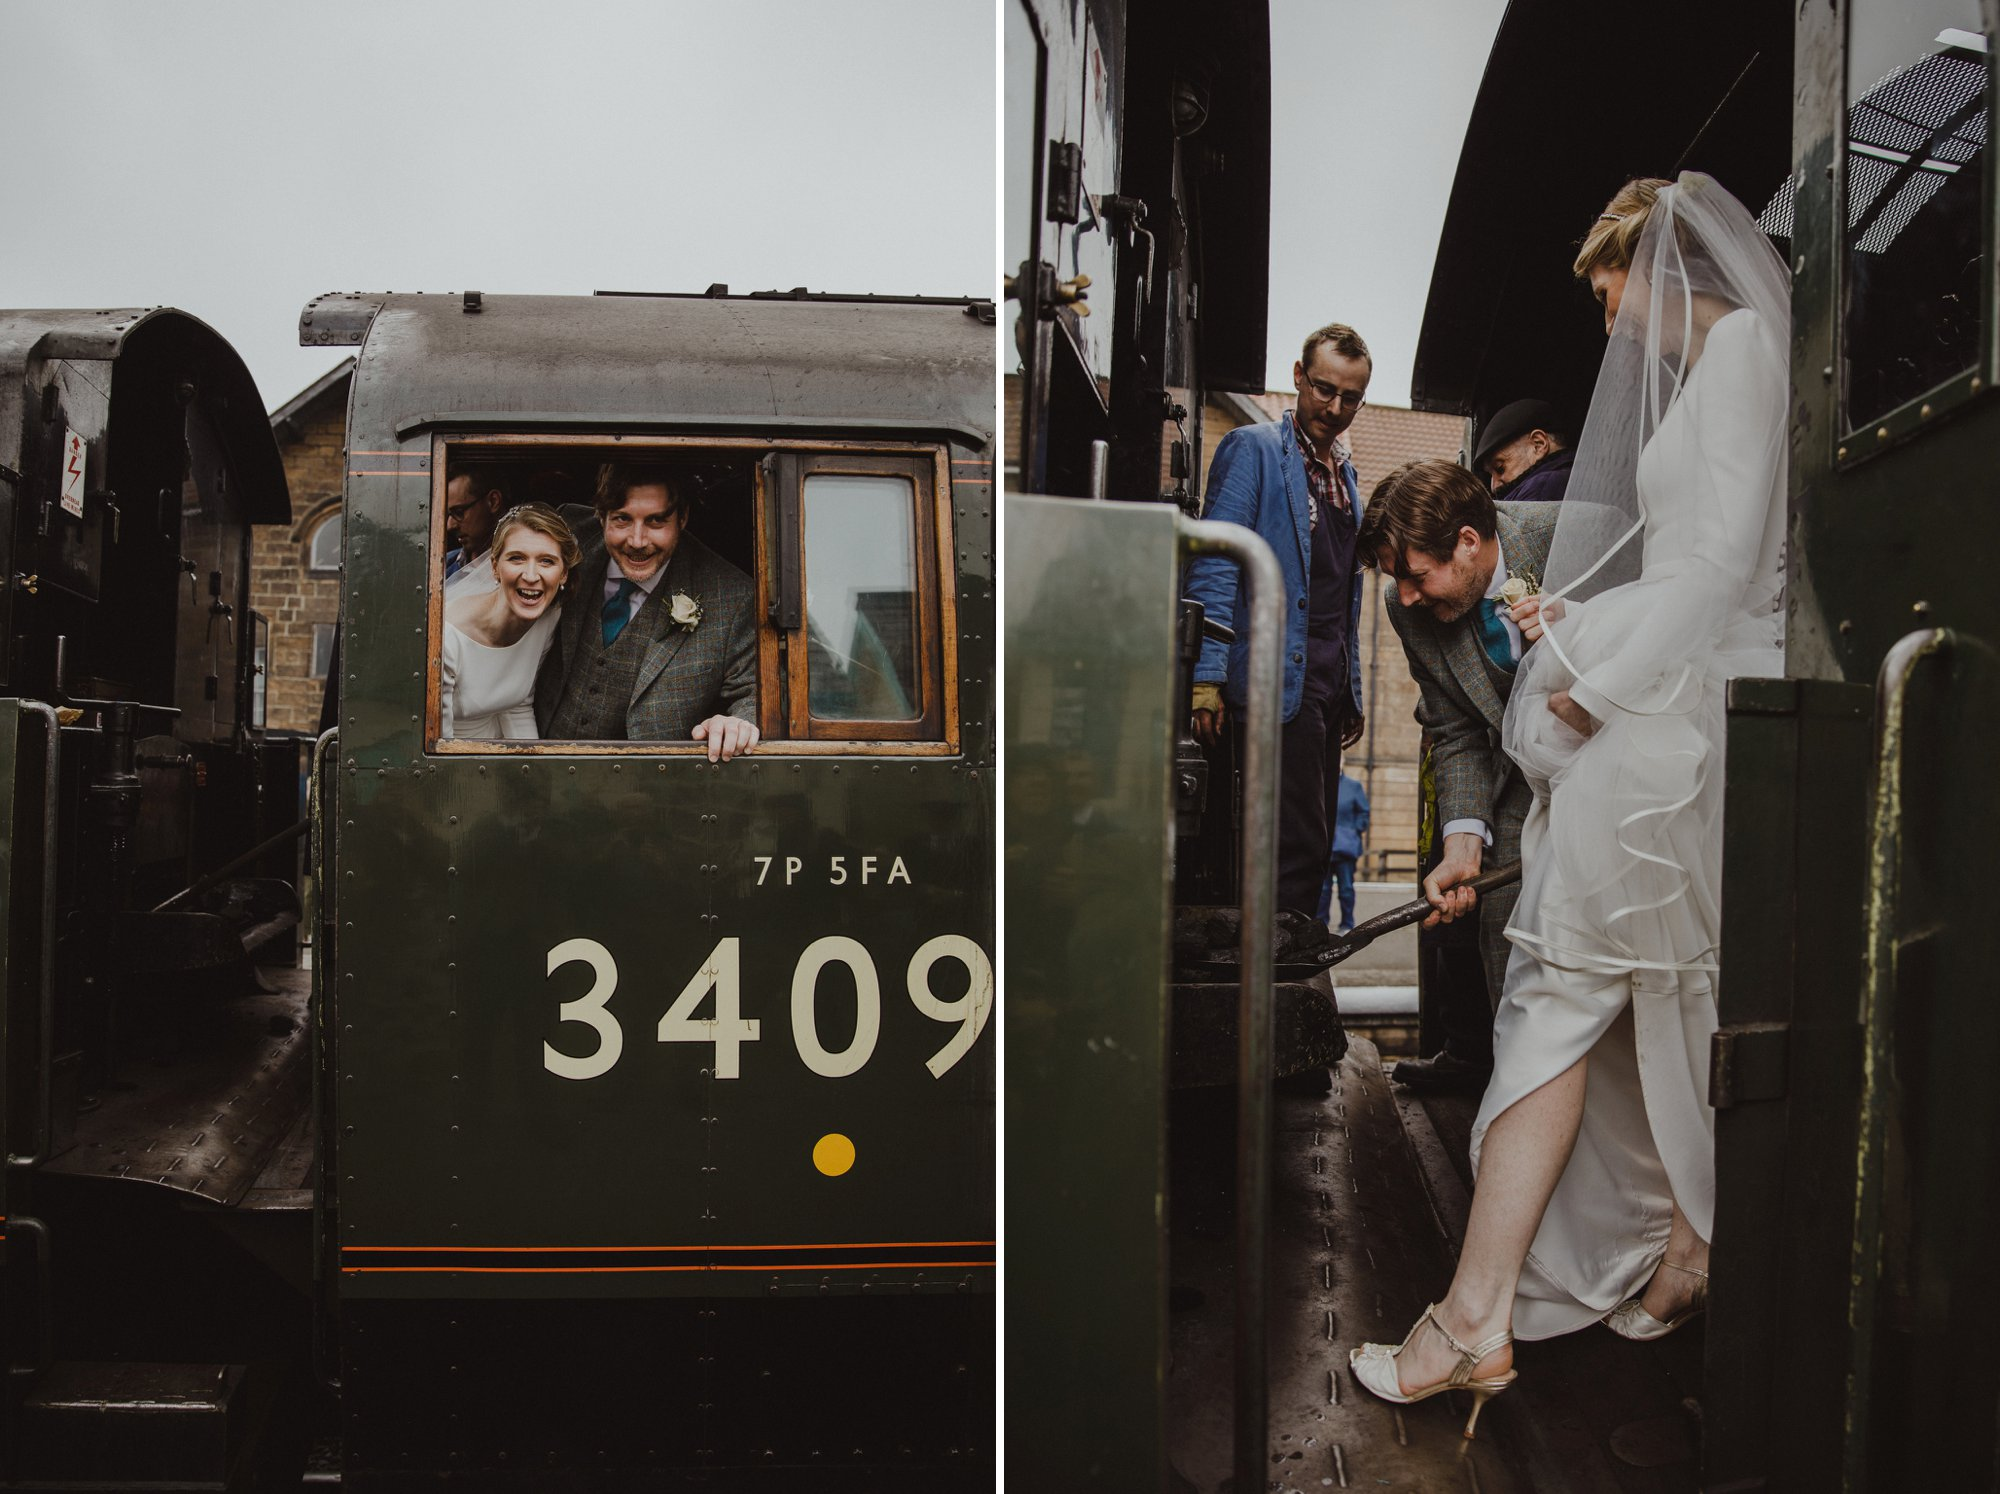 north-yorkshire-moors-railway-wedding_0056.jpg